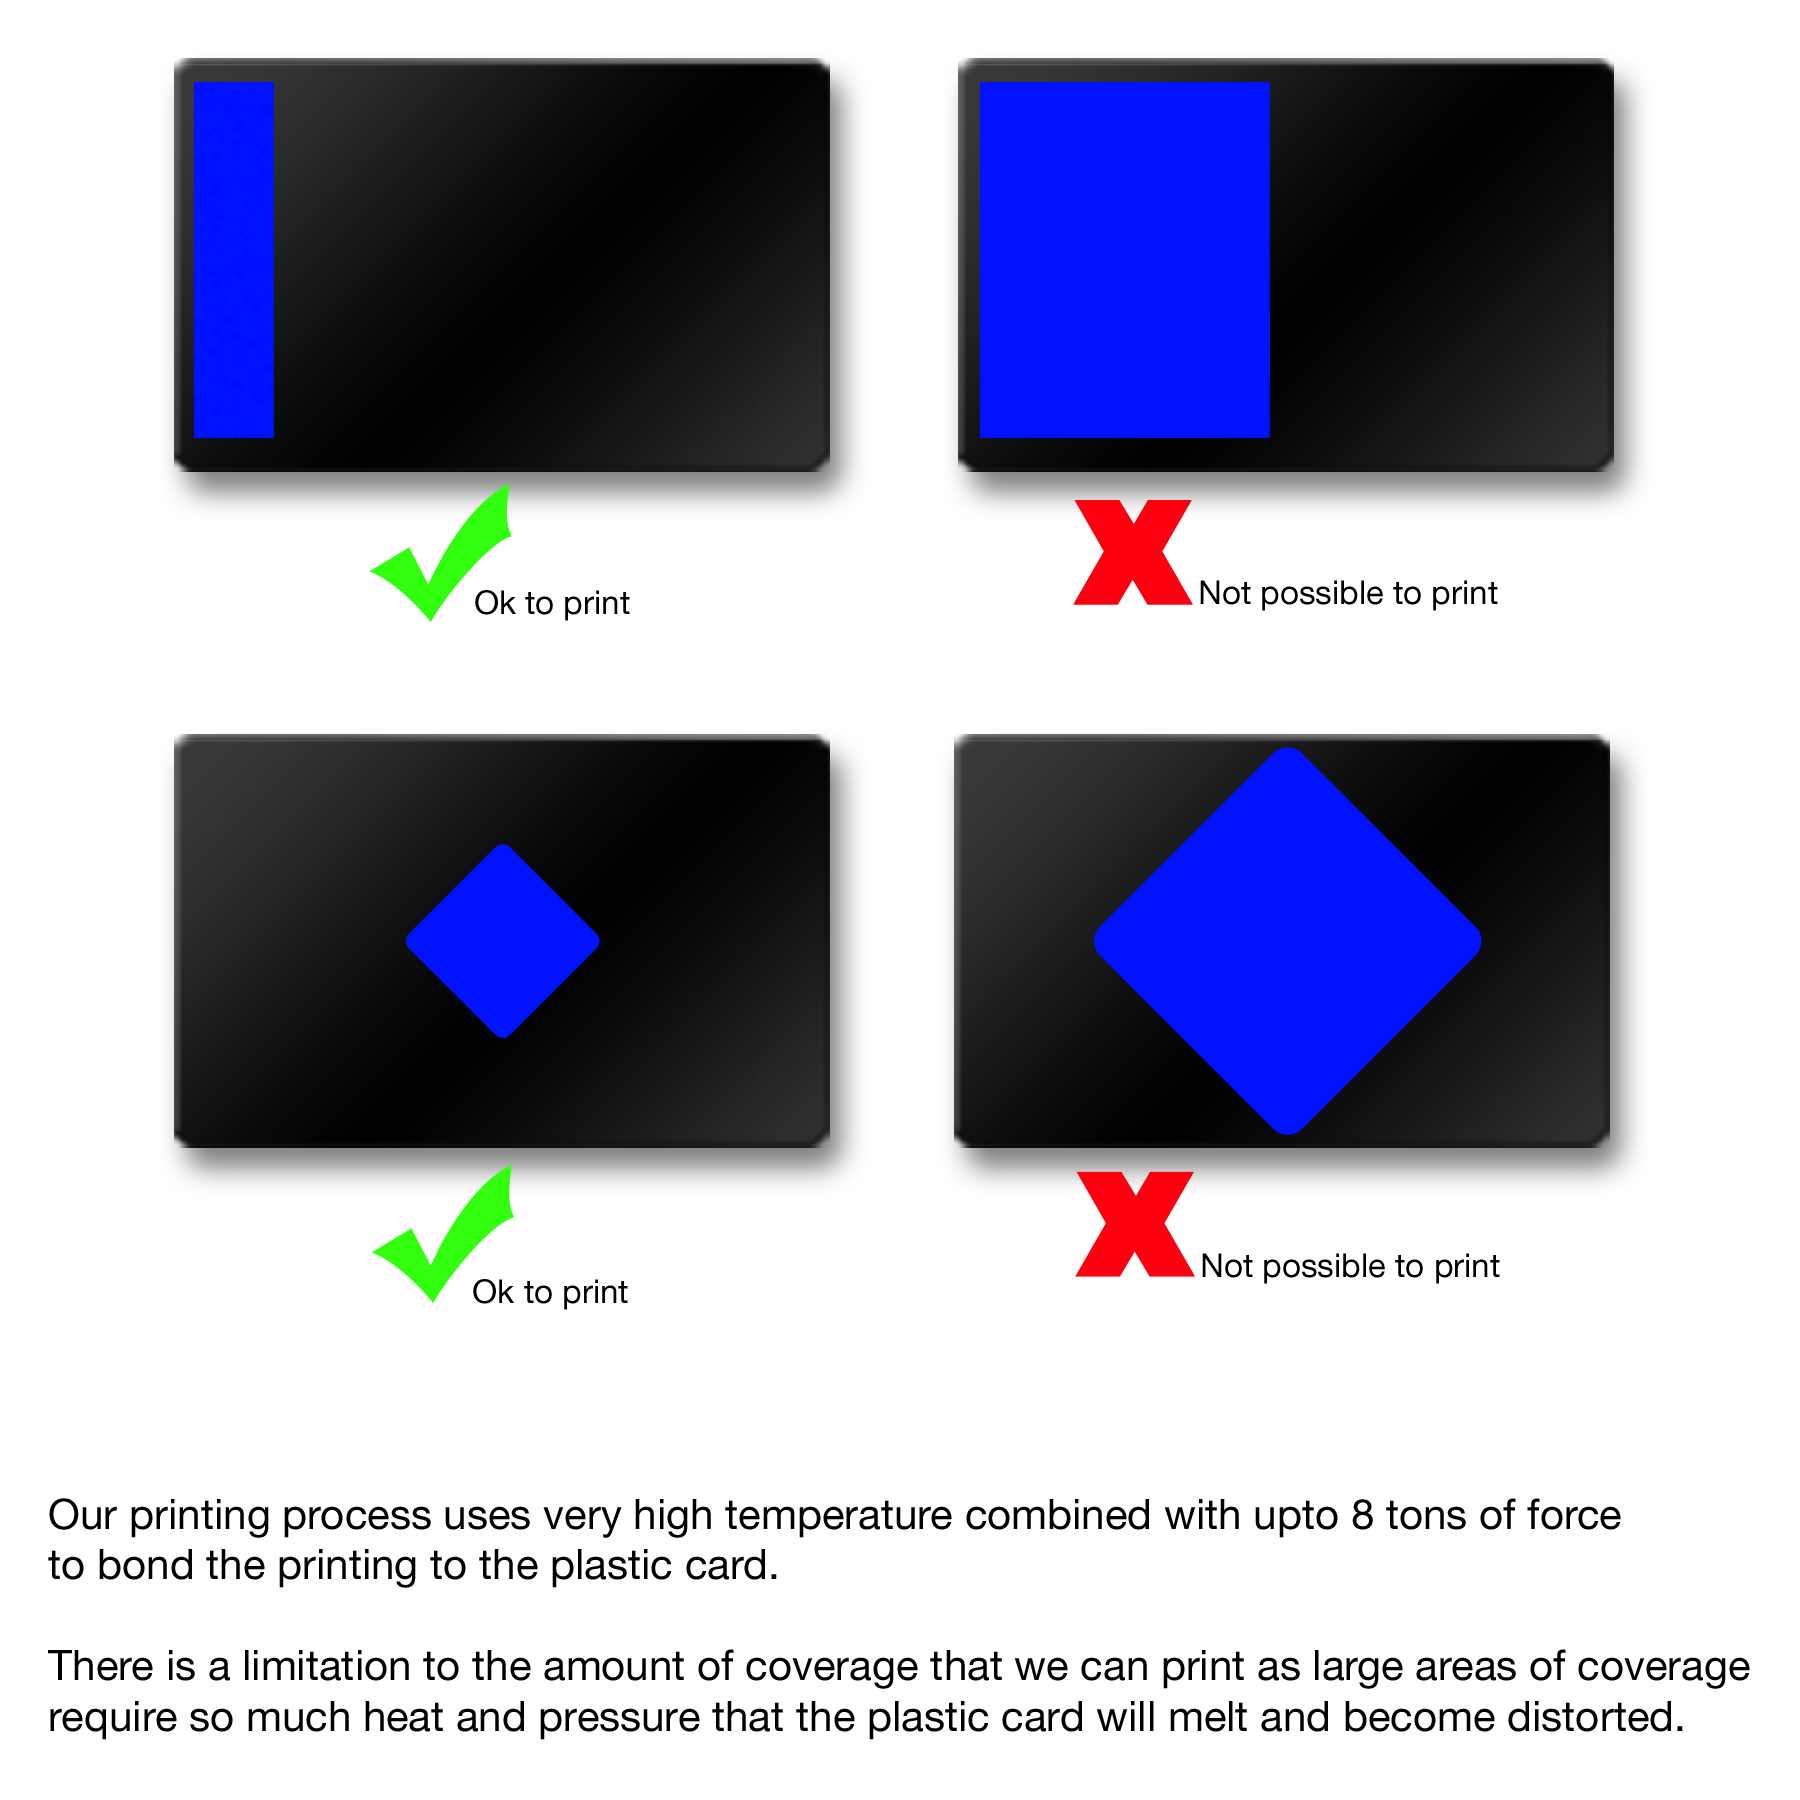 Learn more about ink coverage